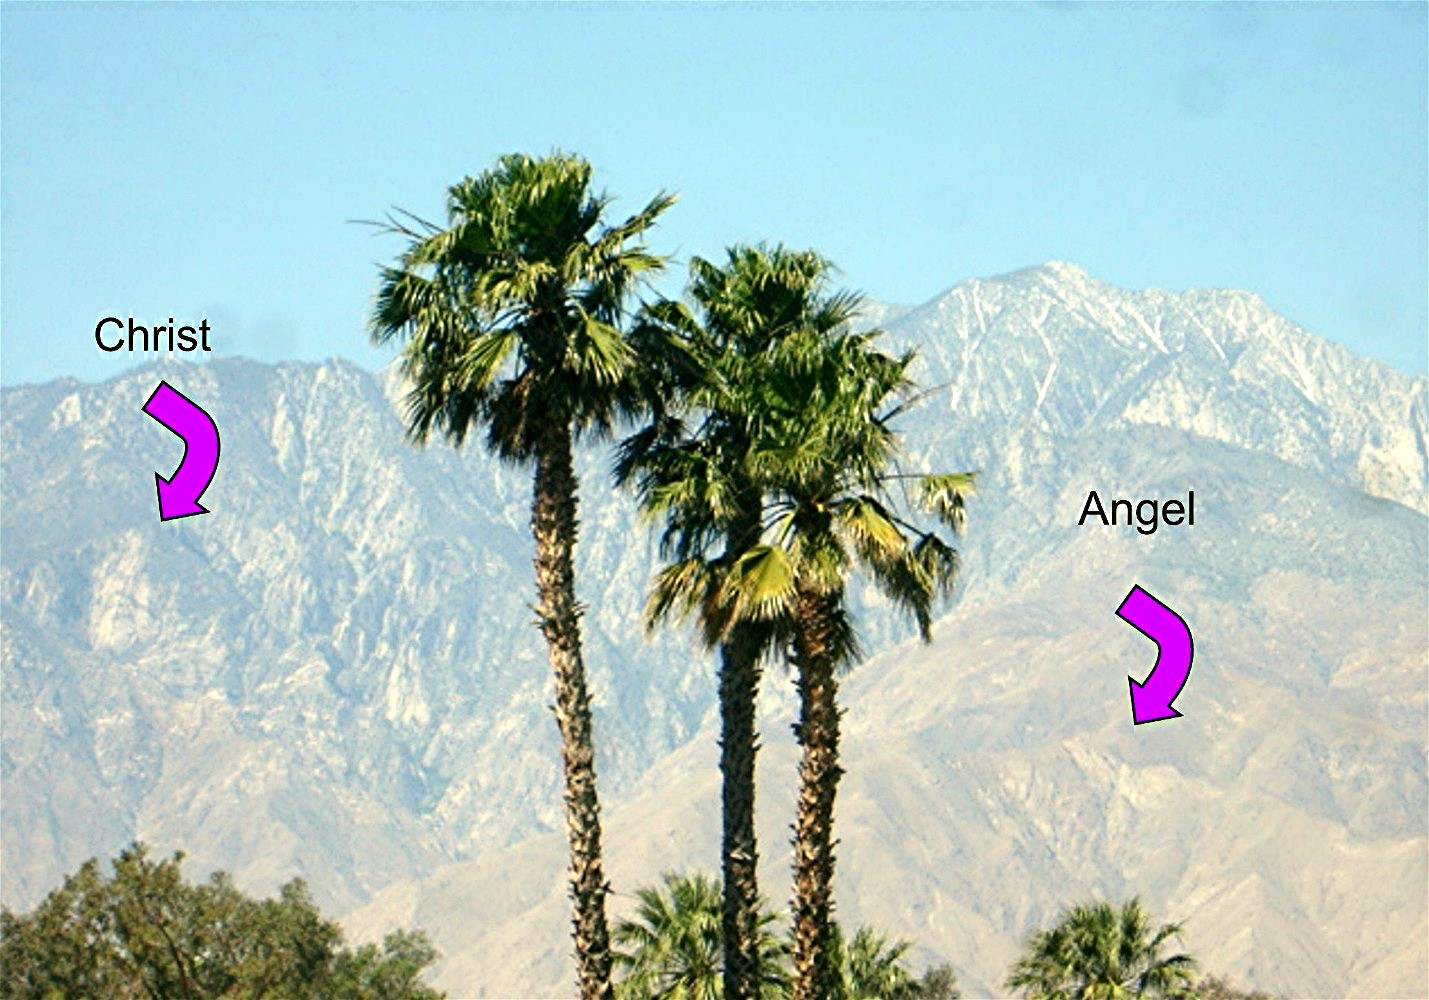 The Angel and The Christ on the San Jacinto Mountain, Palm Springs, CA